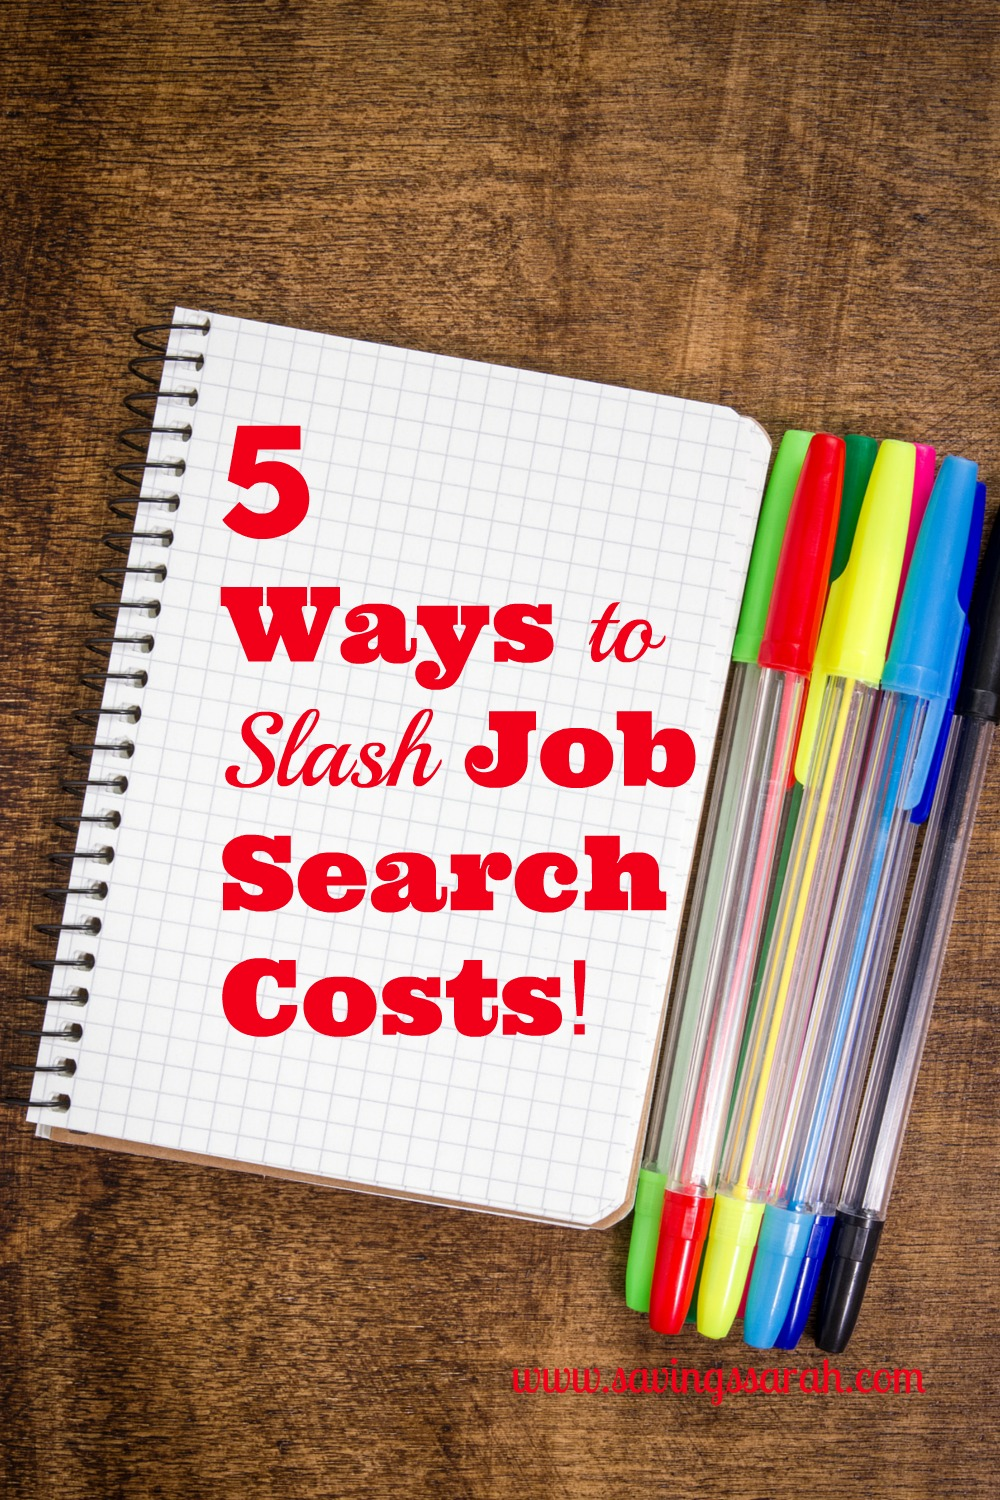 5 Wasy to Slash Job Search Costs